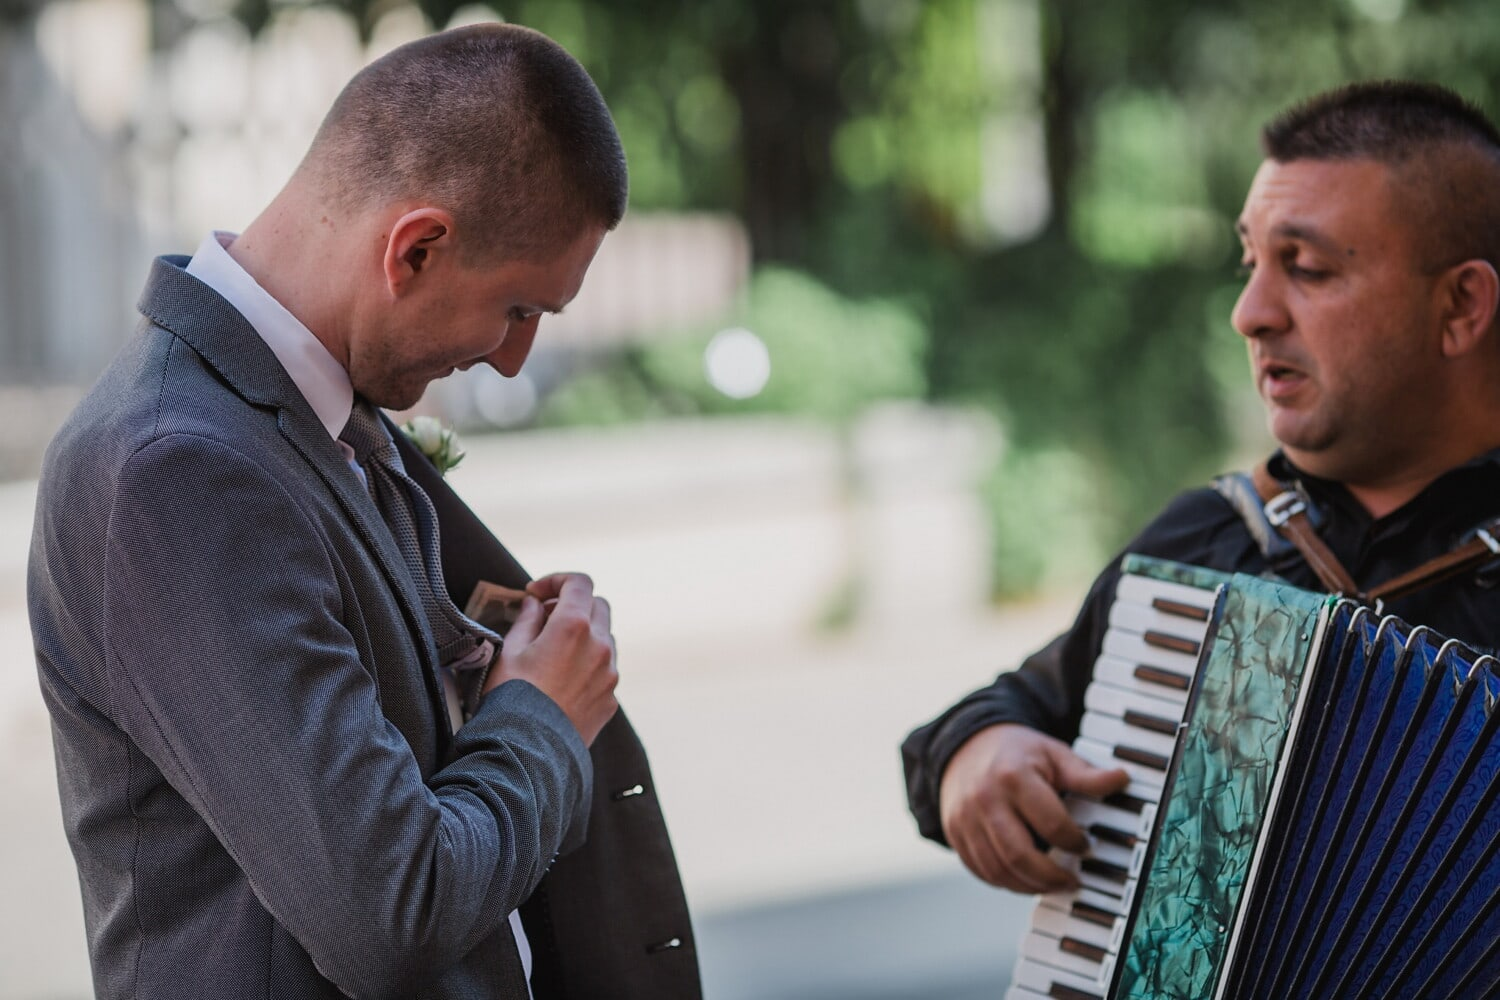 accordion, entertainer, singer, musician, cash, customer, money, man, people, music